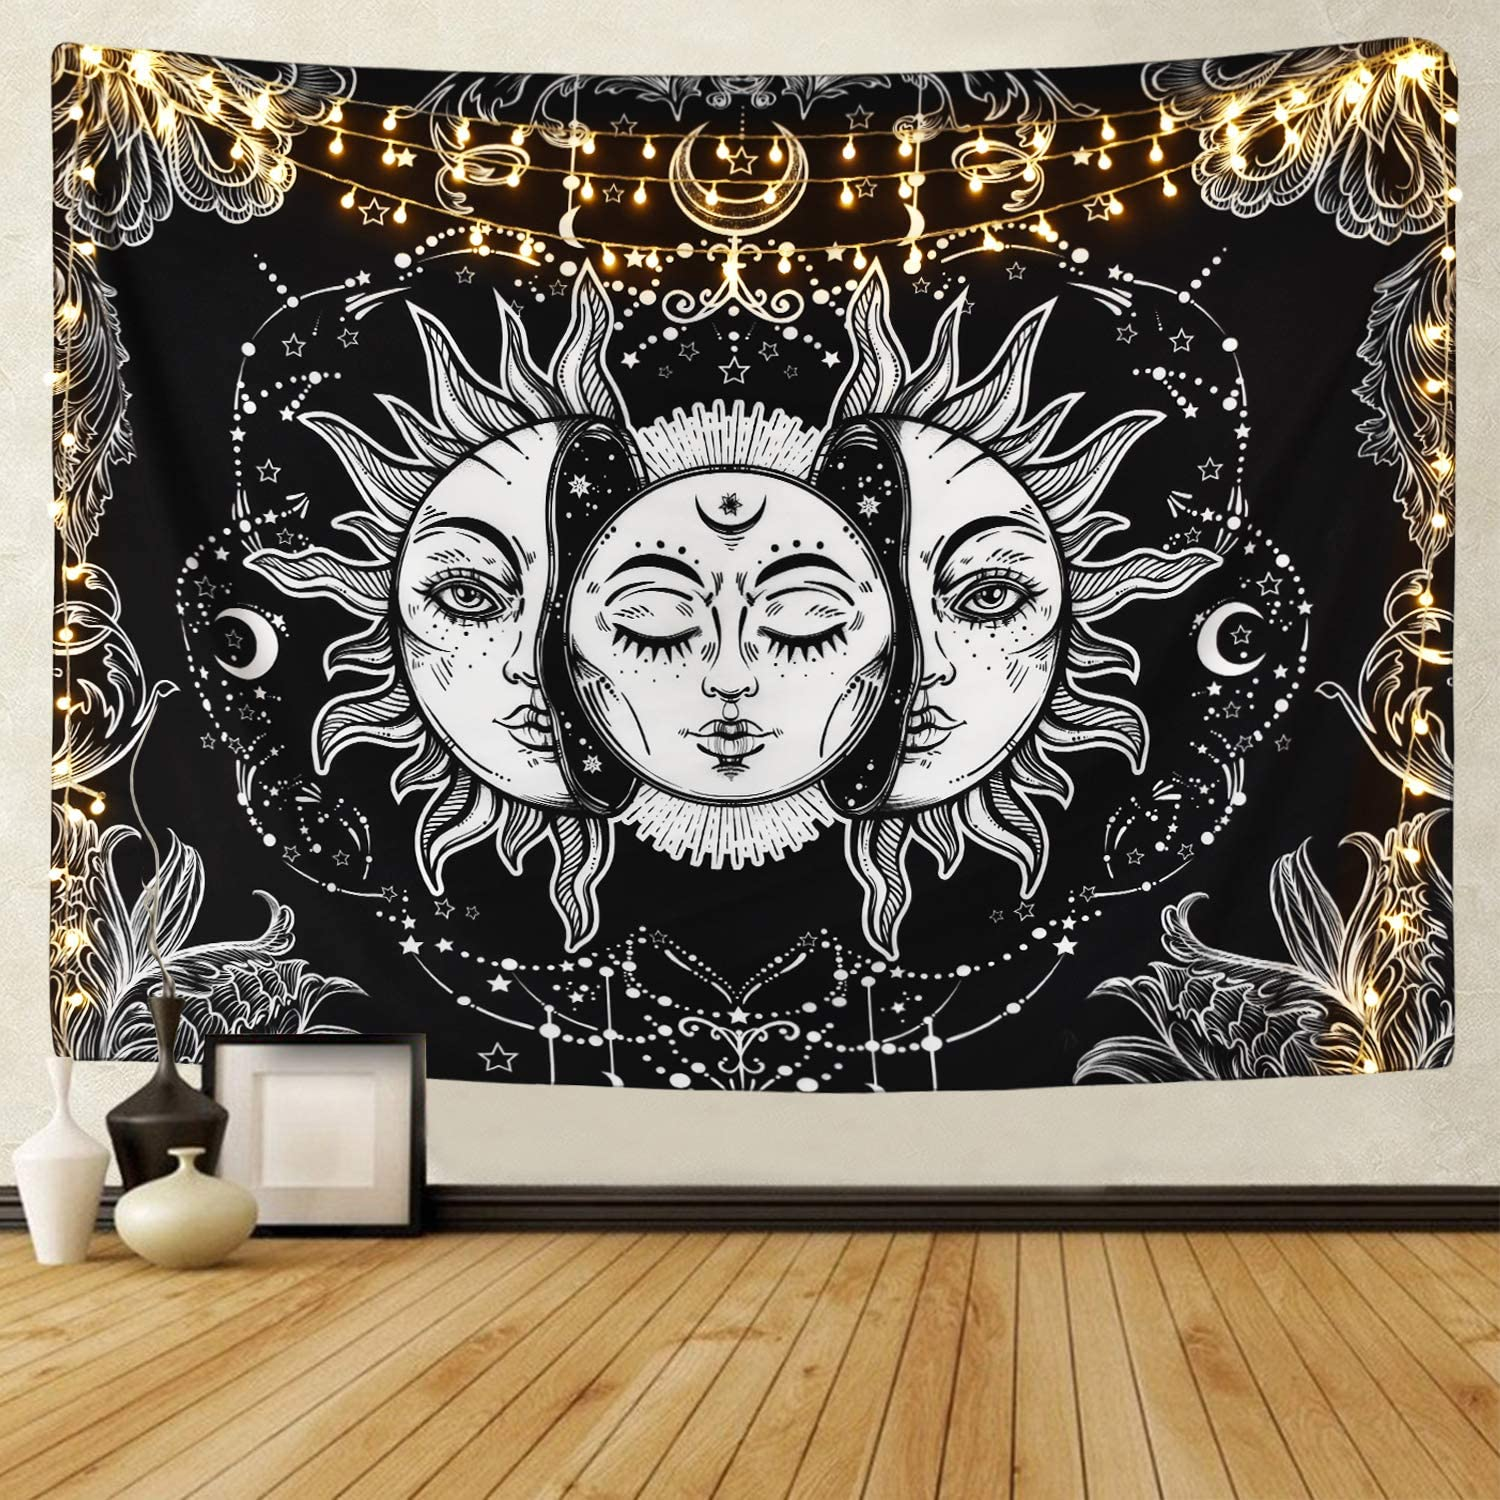 Sun and Moon Tapestry Burning Sun with Star Tapestry Psychedelic Tapestry Black and White Hippie Tapestry Wall Hanging for Home Bedroom (51.2 x 59.1 inches)